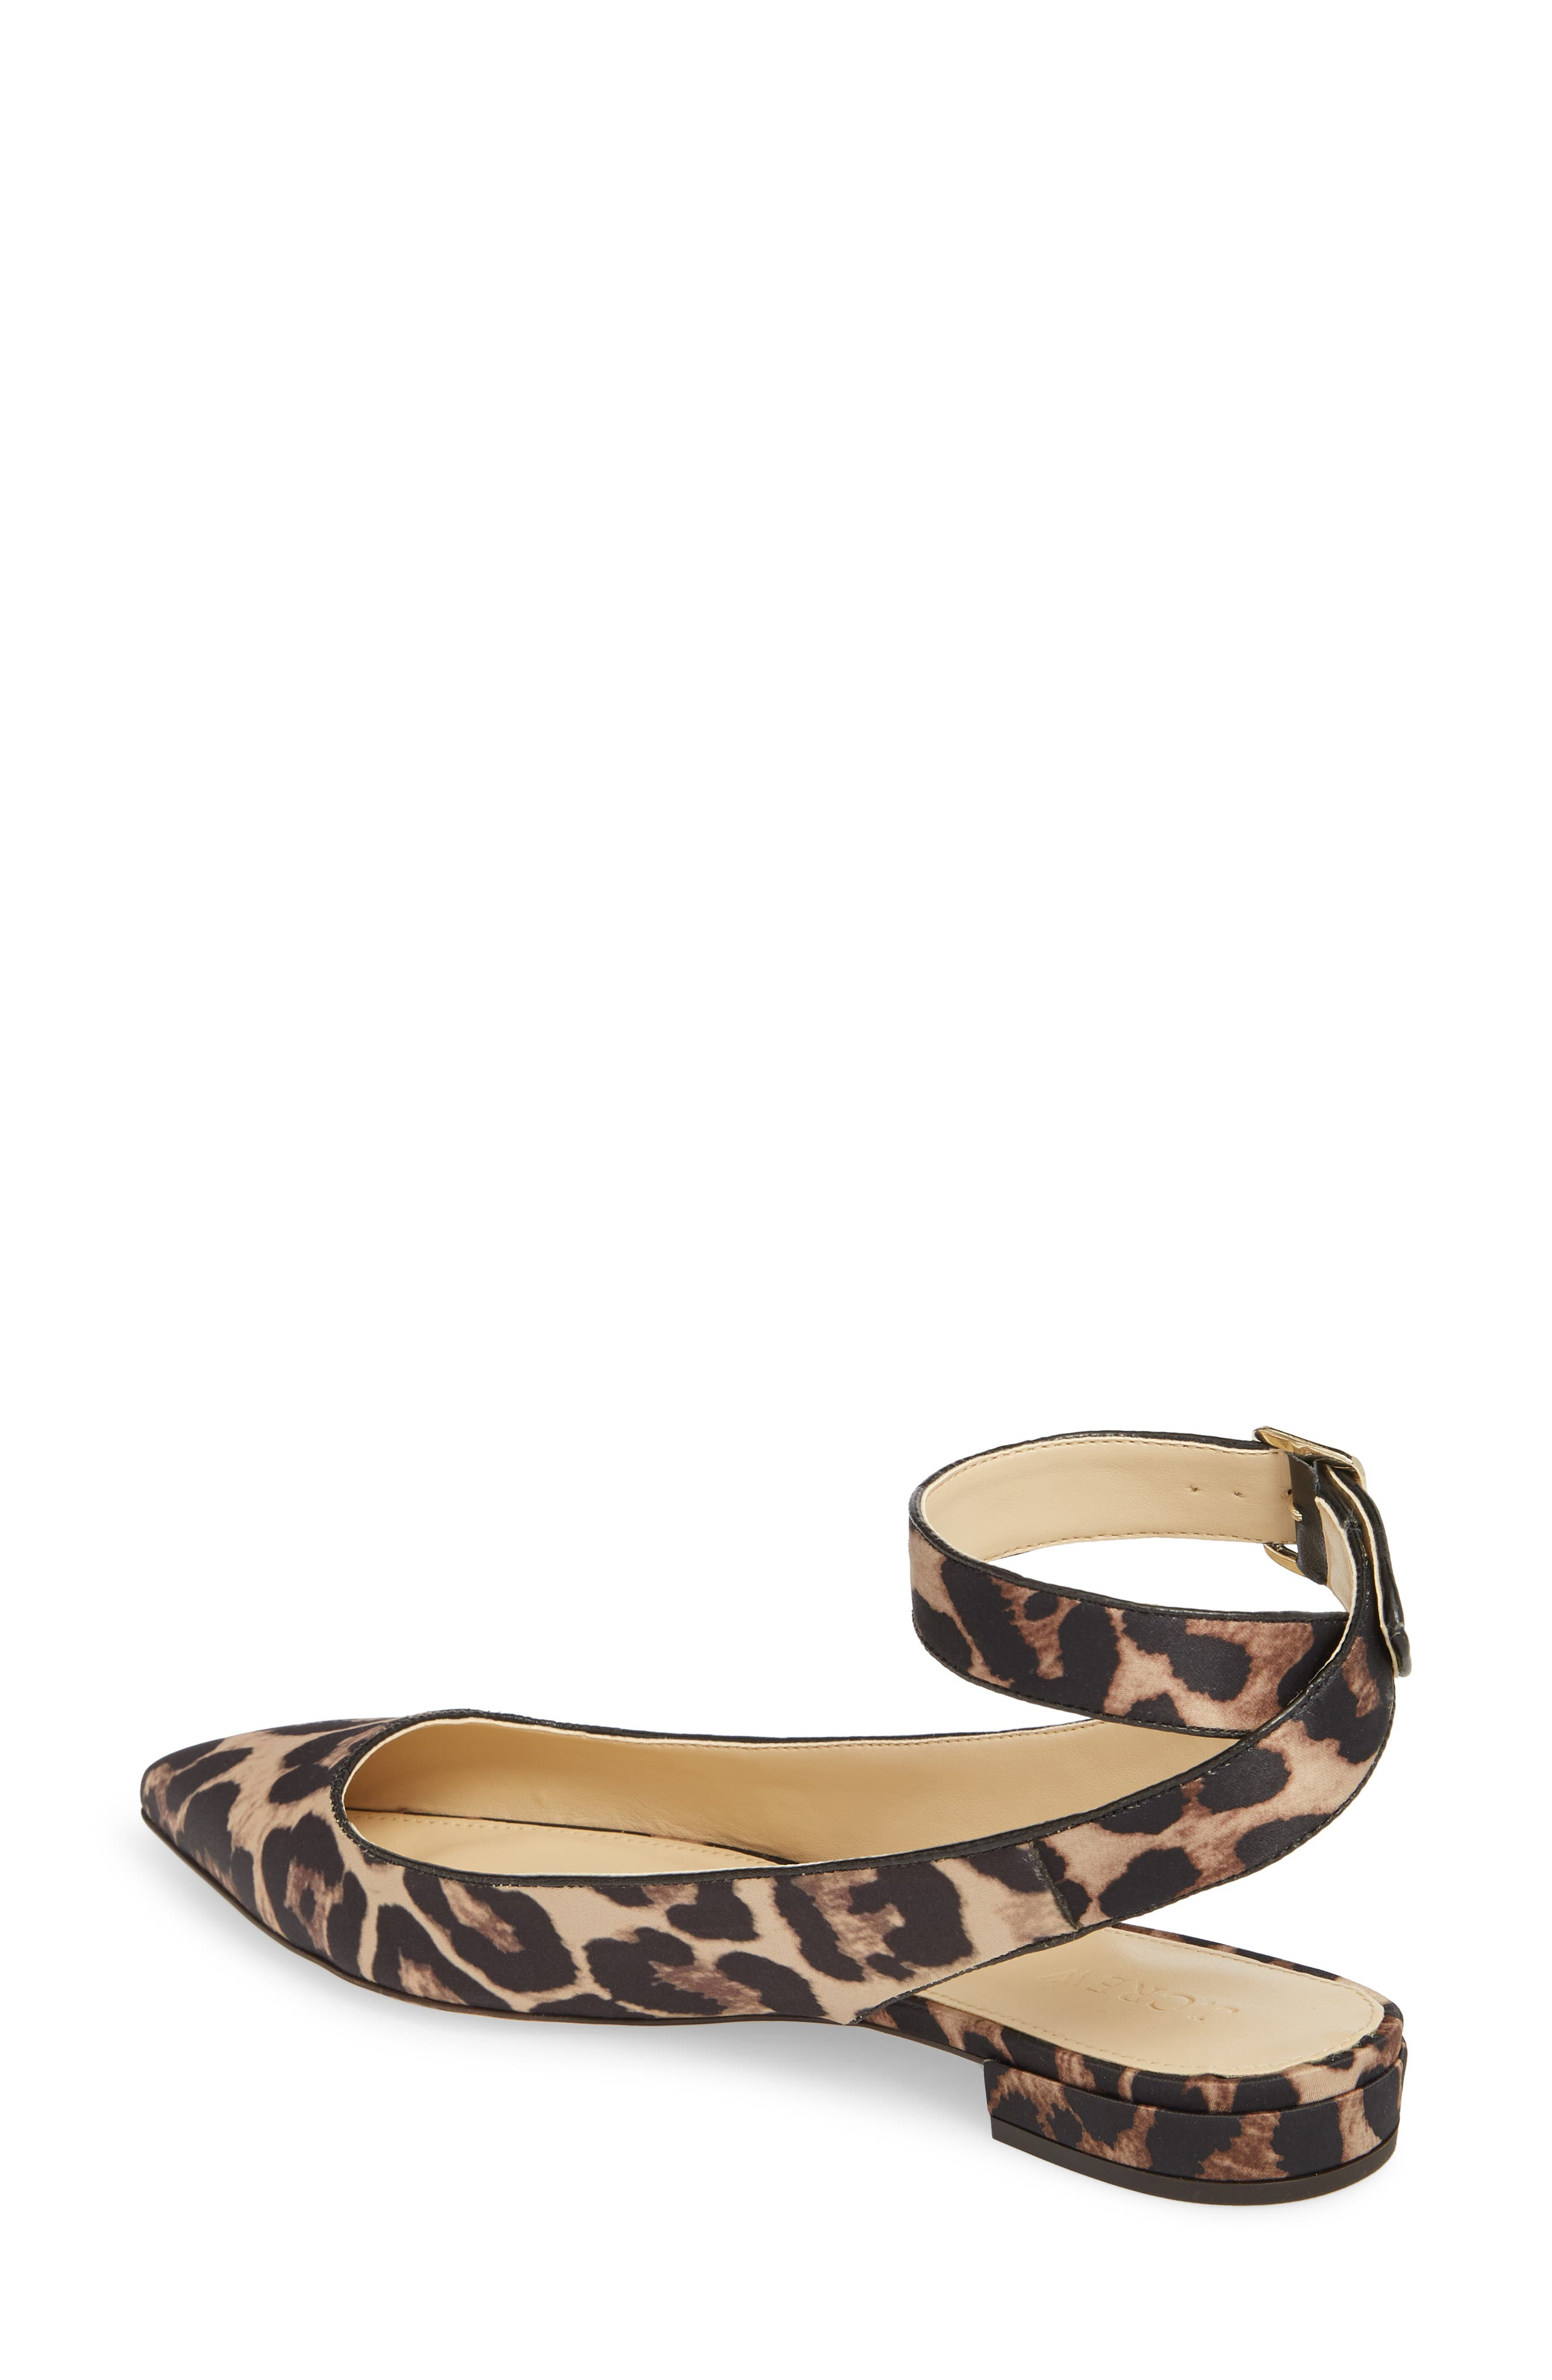 J. Crew Harlech Tabby Print Ankle Strap Flat,                             Alternate thumbnail 2, color,